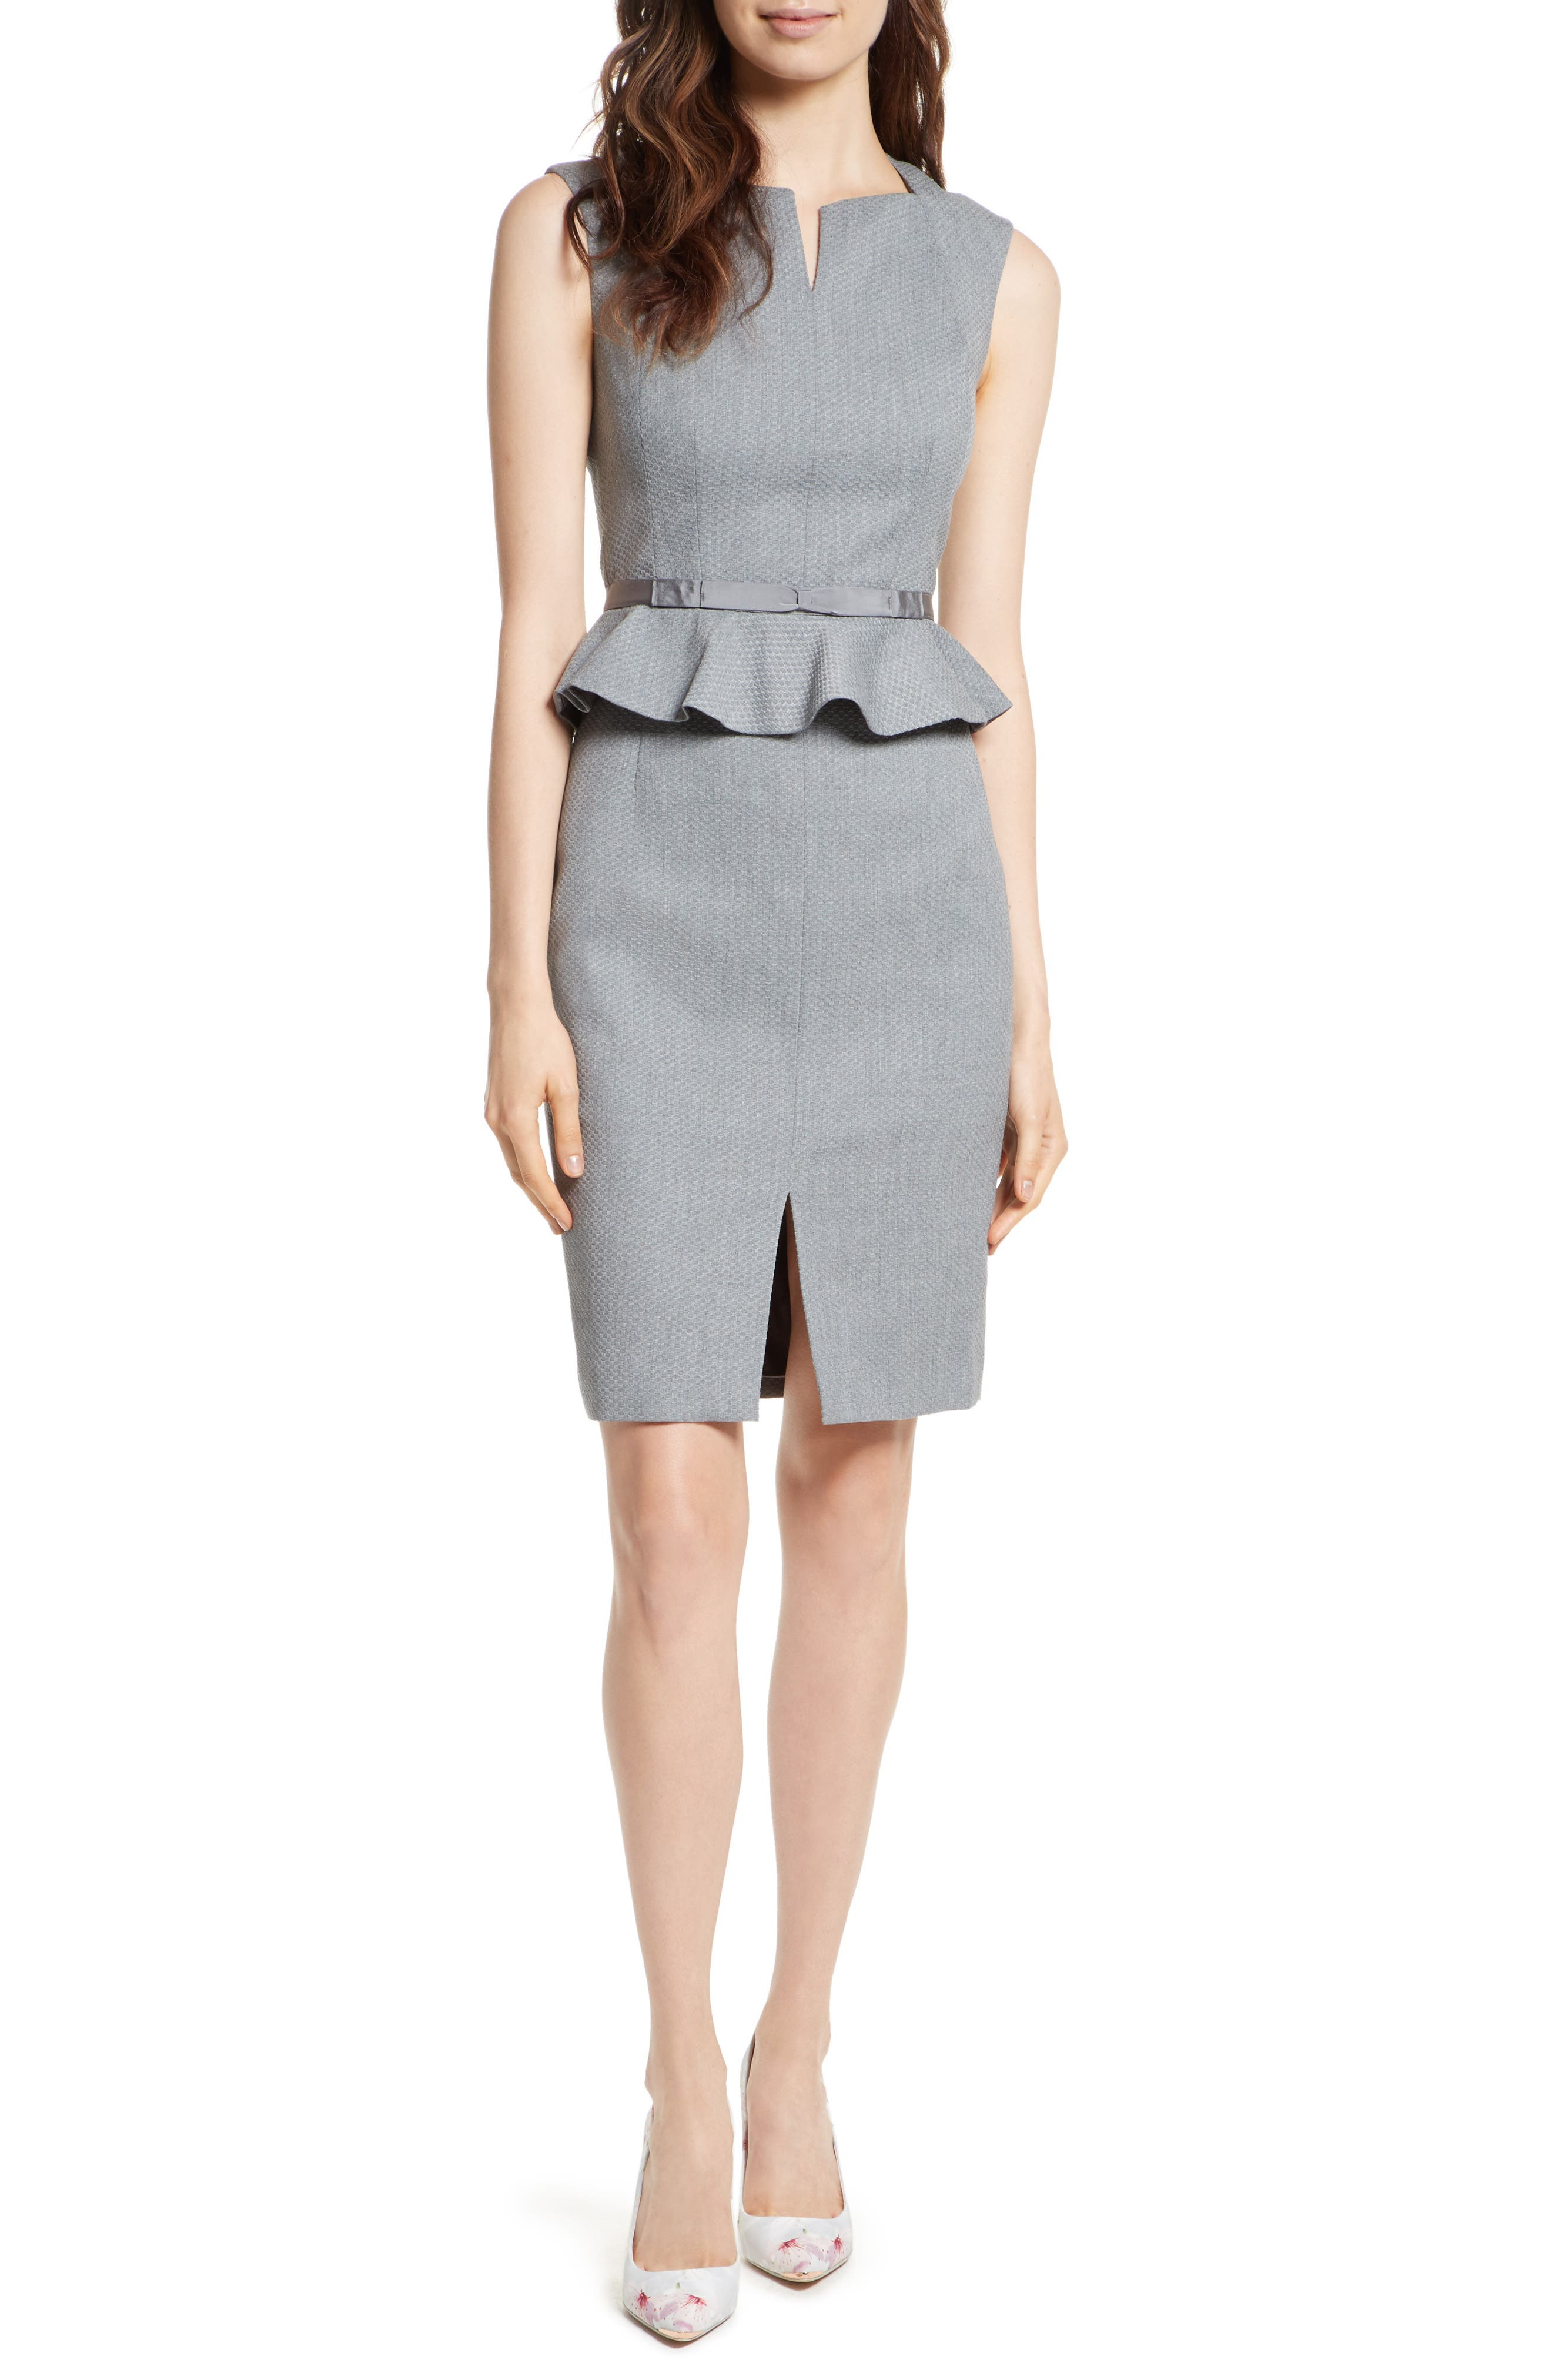 Main Image - Ted Baker London Nadaed Bow Detail Textured Peplum Dress